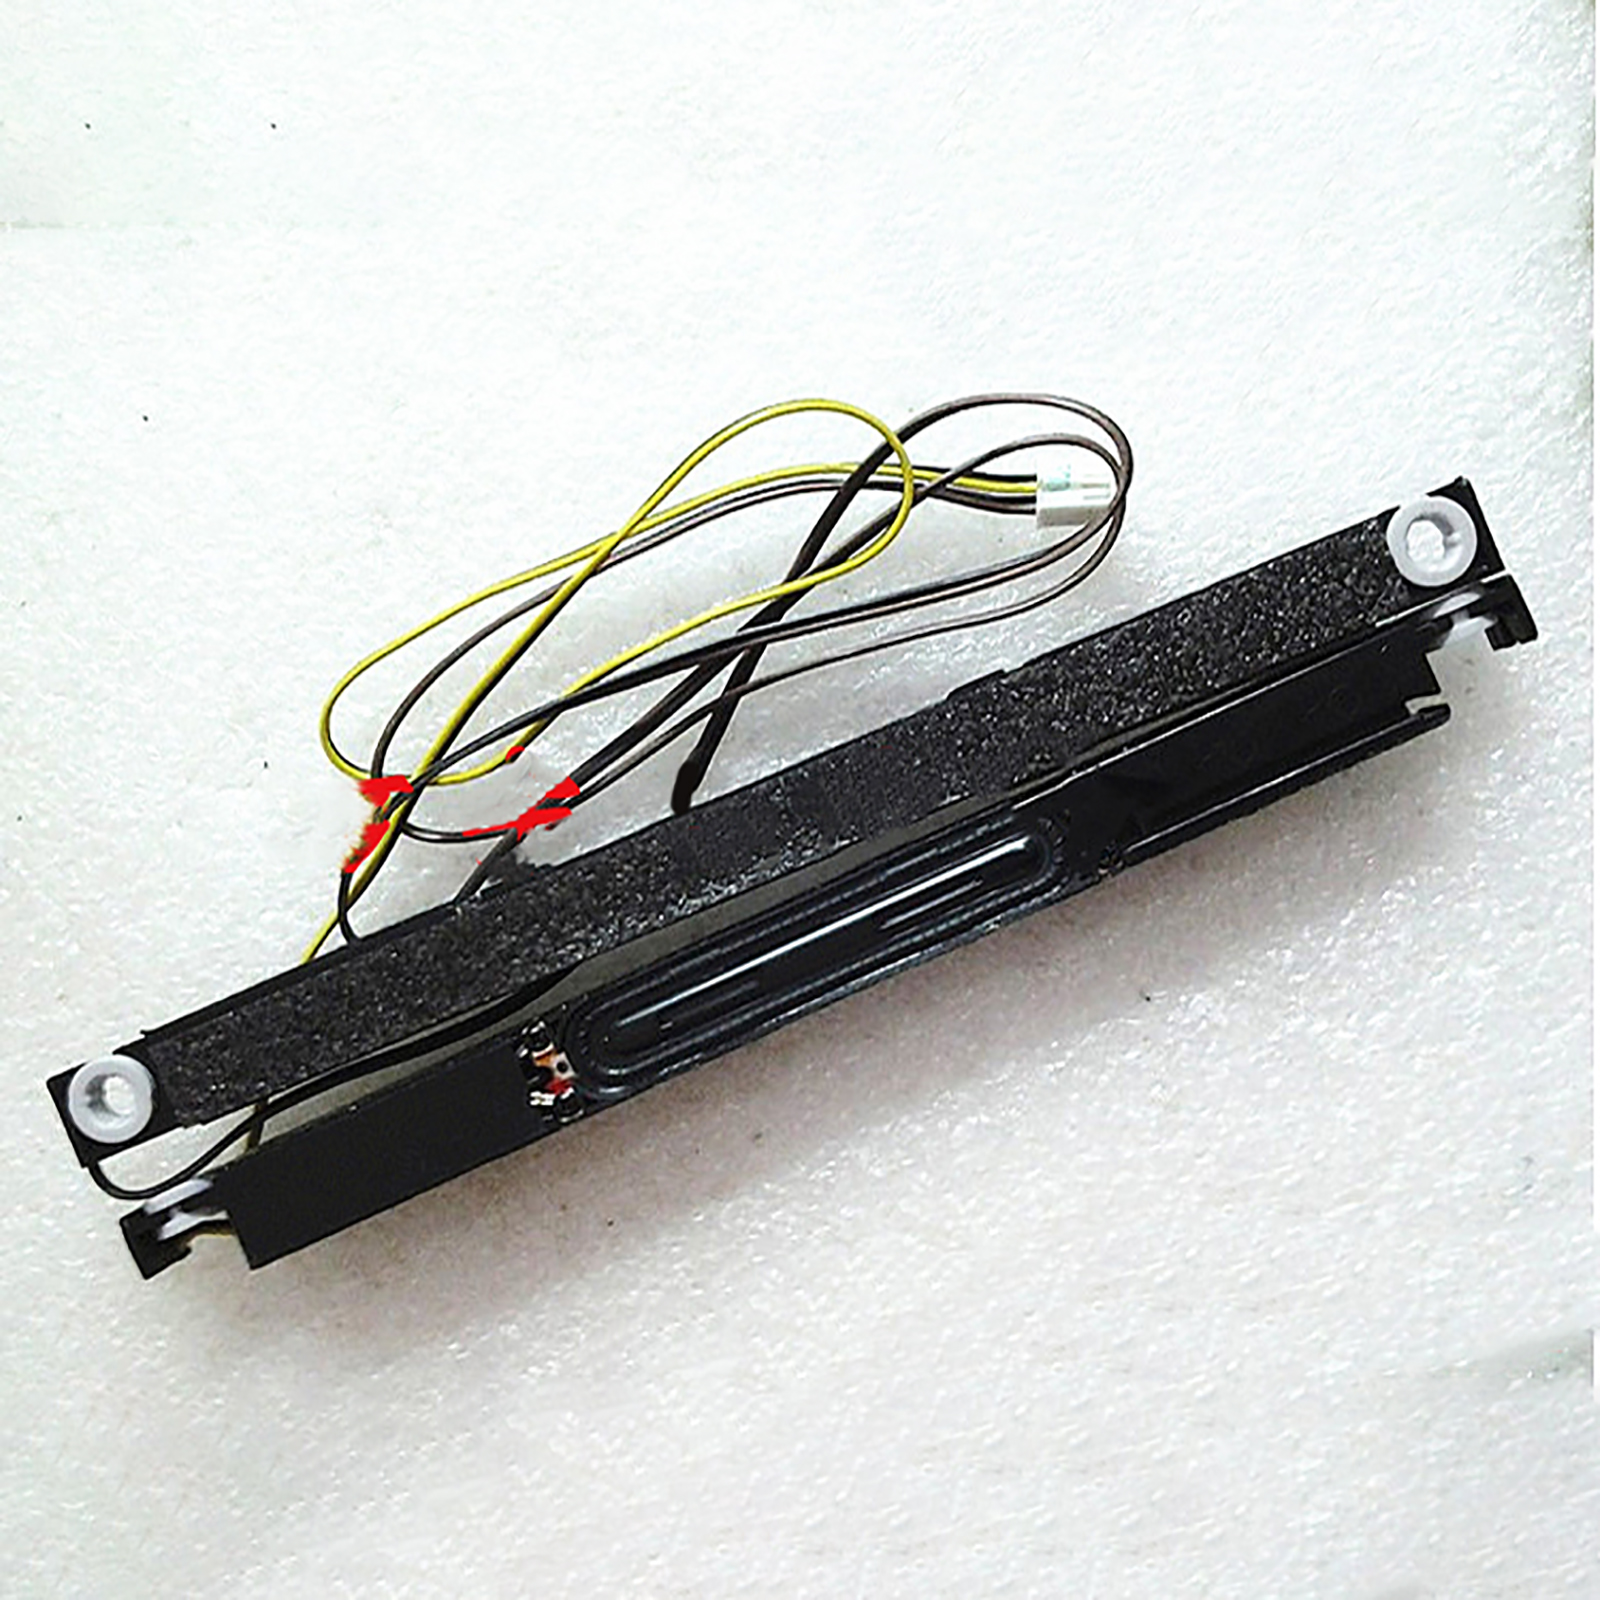 Replacement LCD TV Speaker For Samsung BN96-12941D 8 Ohms 10W R101206JY LCD TV Speaker